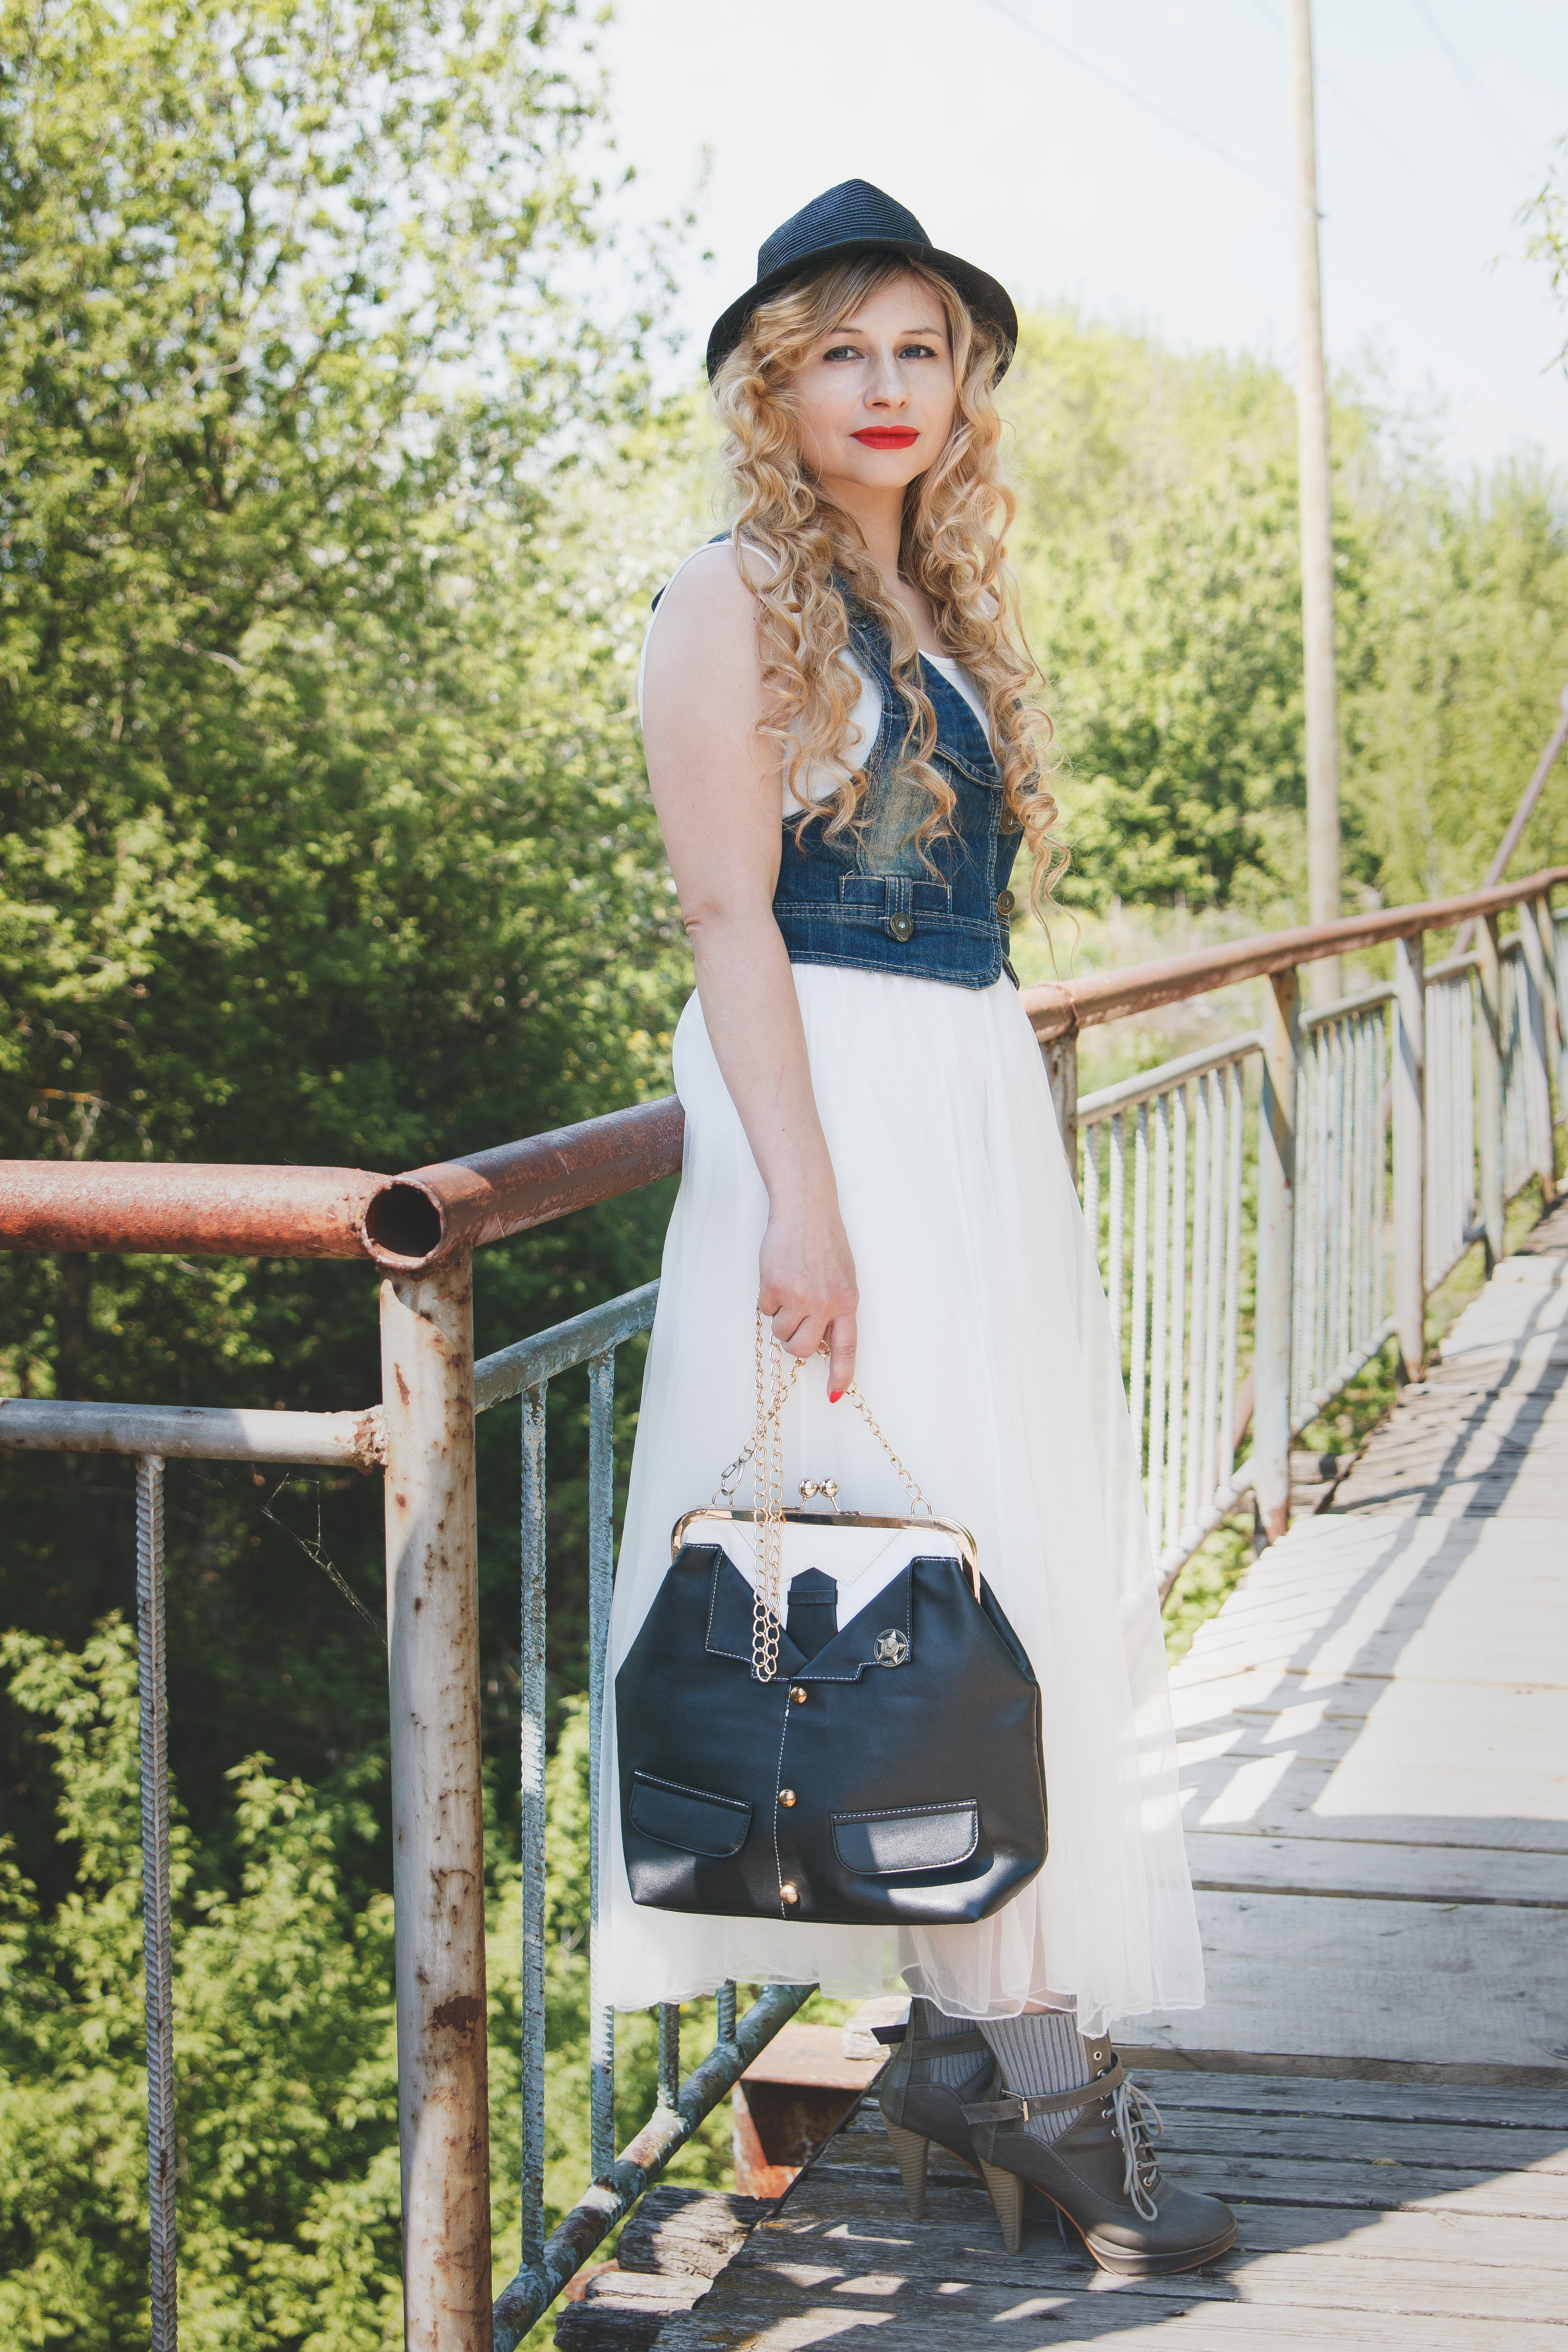 Woman in Denim and White Dress